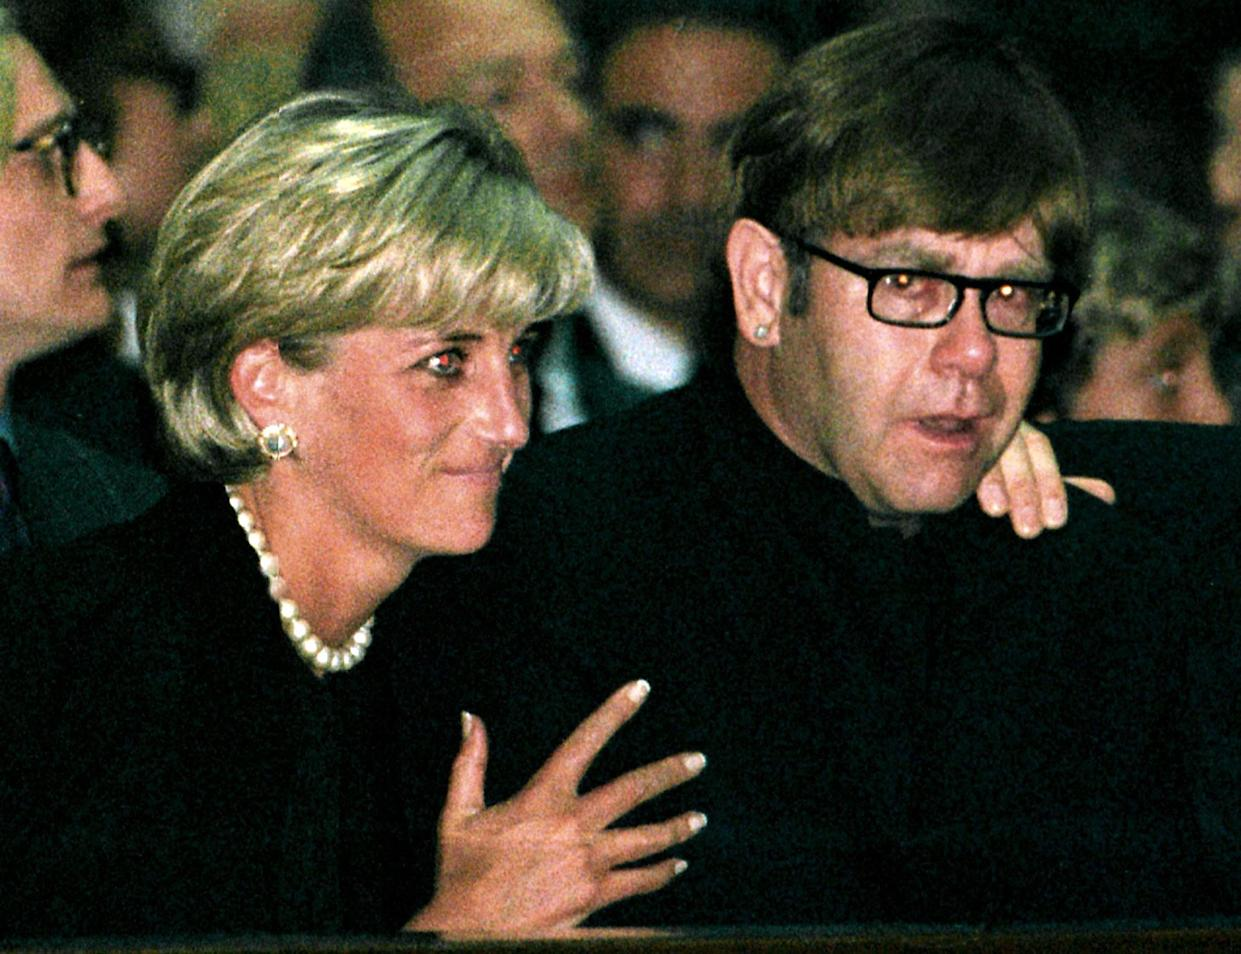 FILE PHOTO 22JUL97 - Diana, Princess of Wales and pop star Elton John attend a memorial mass for Italian fashion designer Gianni Versace in Milan Cathedral July 22. Rock superstar Elton John will sing at her funeral on Saturday before a worldwide television audience expected to run into hundreds of millions. Elton John said in a television interview that he will do all he can not to cry when he performs at the funeral of his friend Diana.  DIANA ELTON